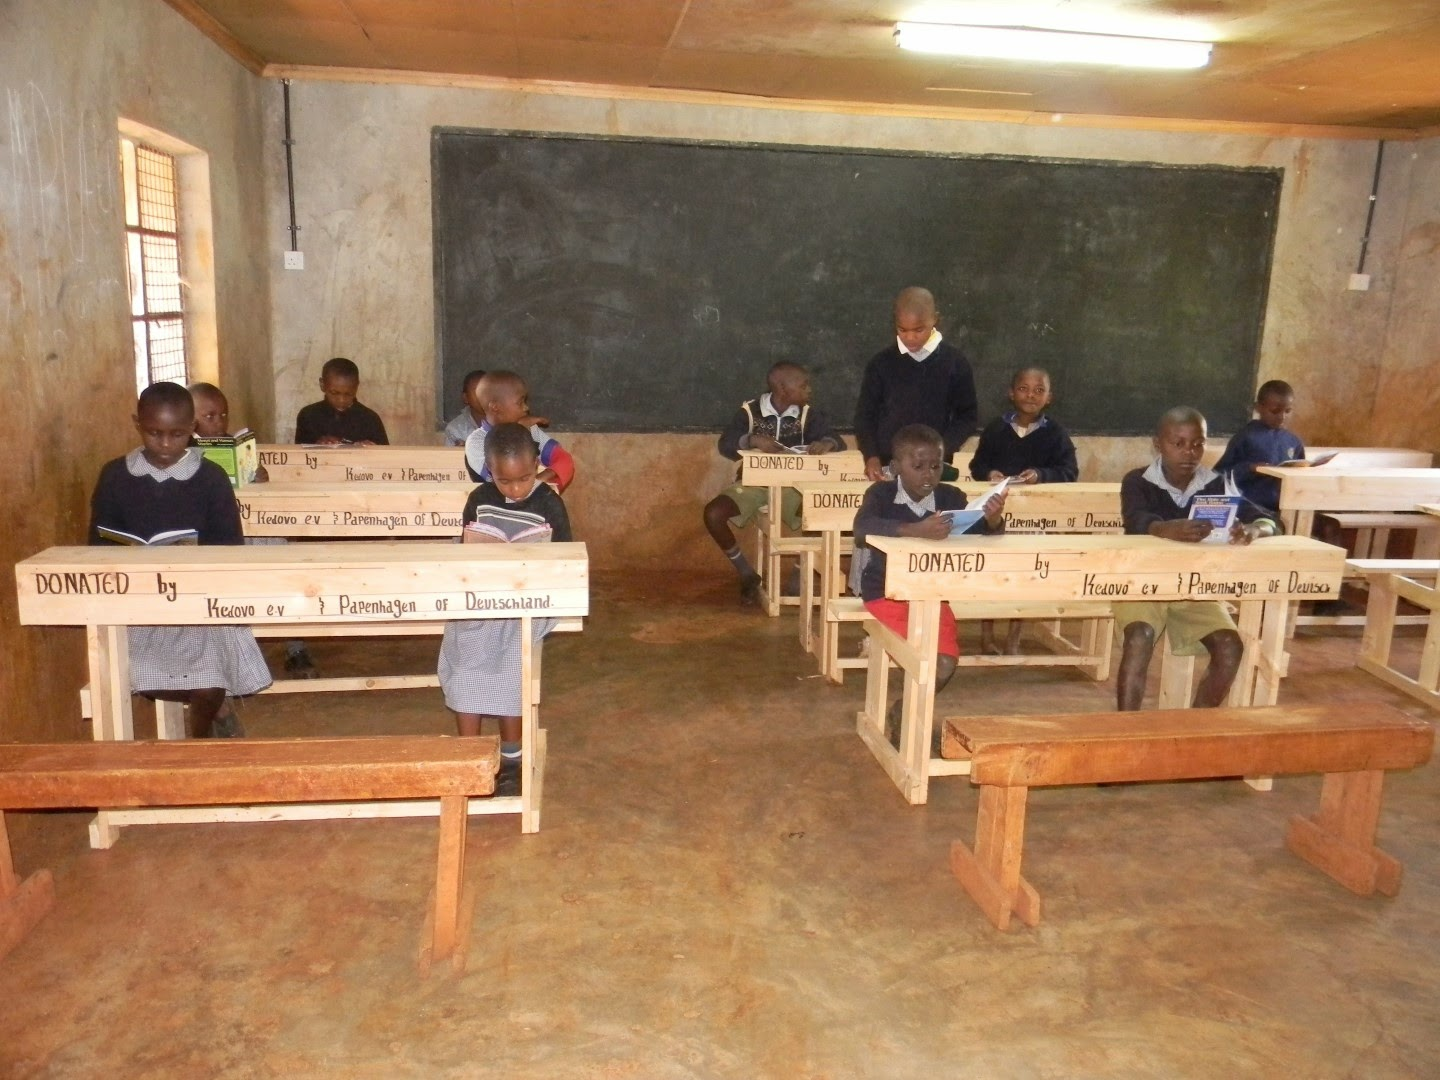 A classroom with the new desks donated by Kedovo e.V. and their partners